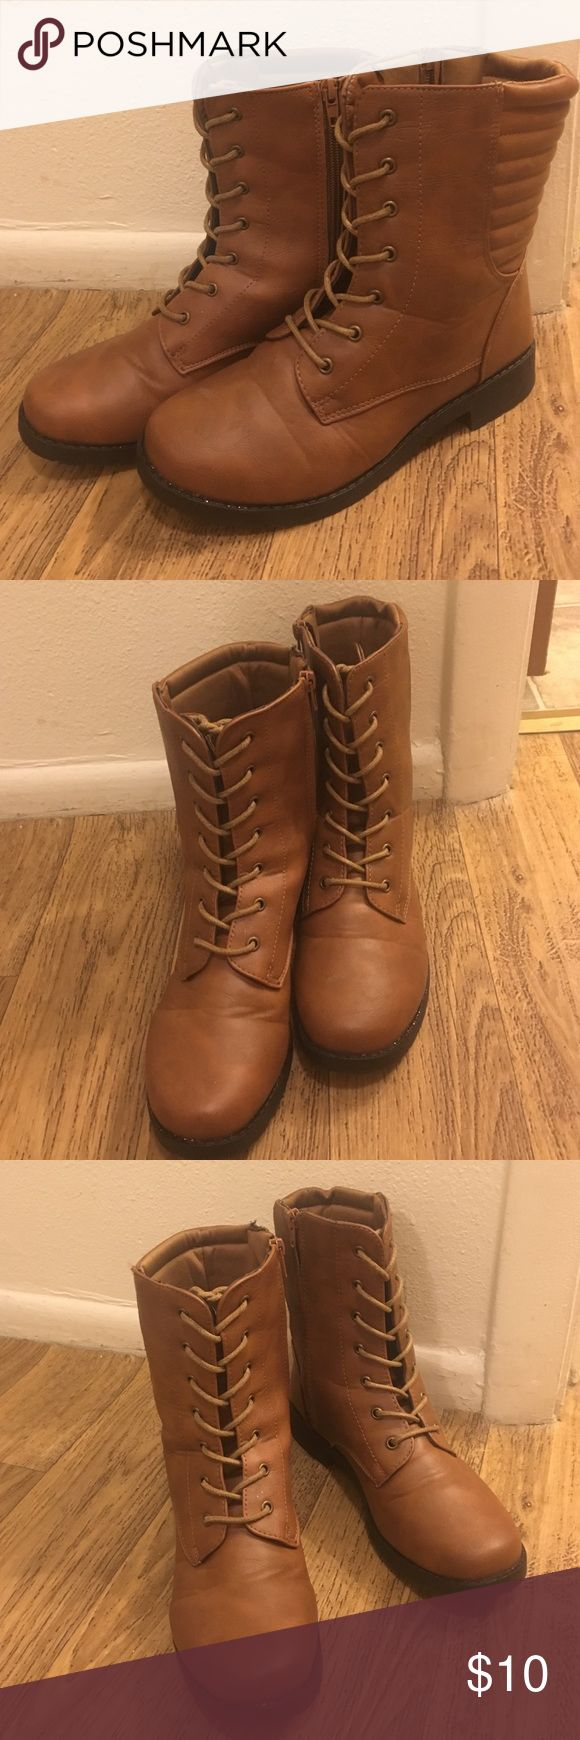 Hipster boots Brown, tie up, side zip boots Rue 21 Shoes Combat & Moto Boots